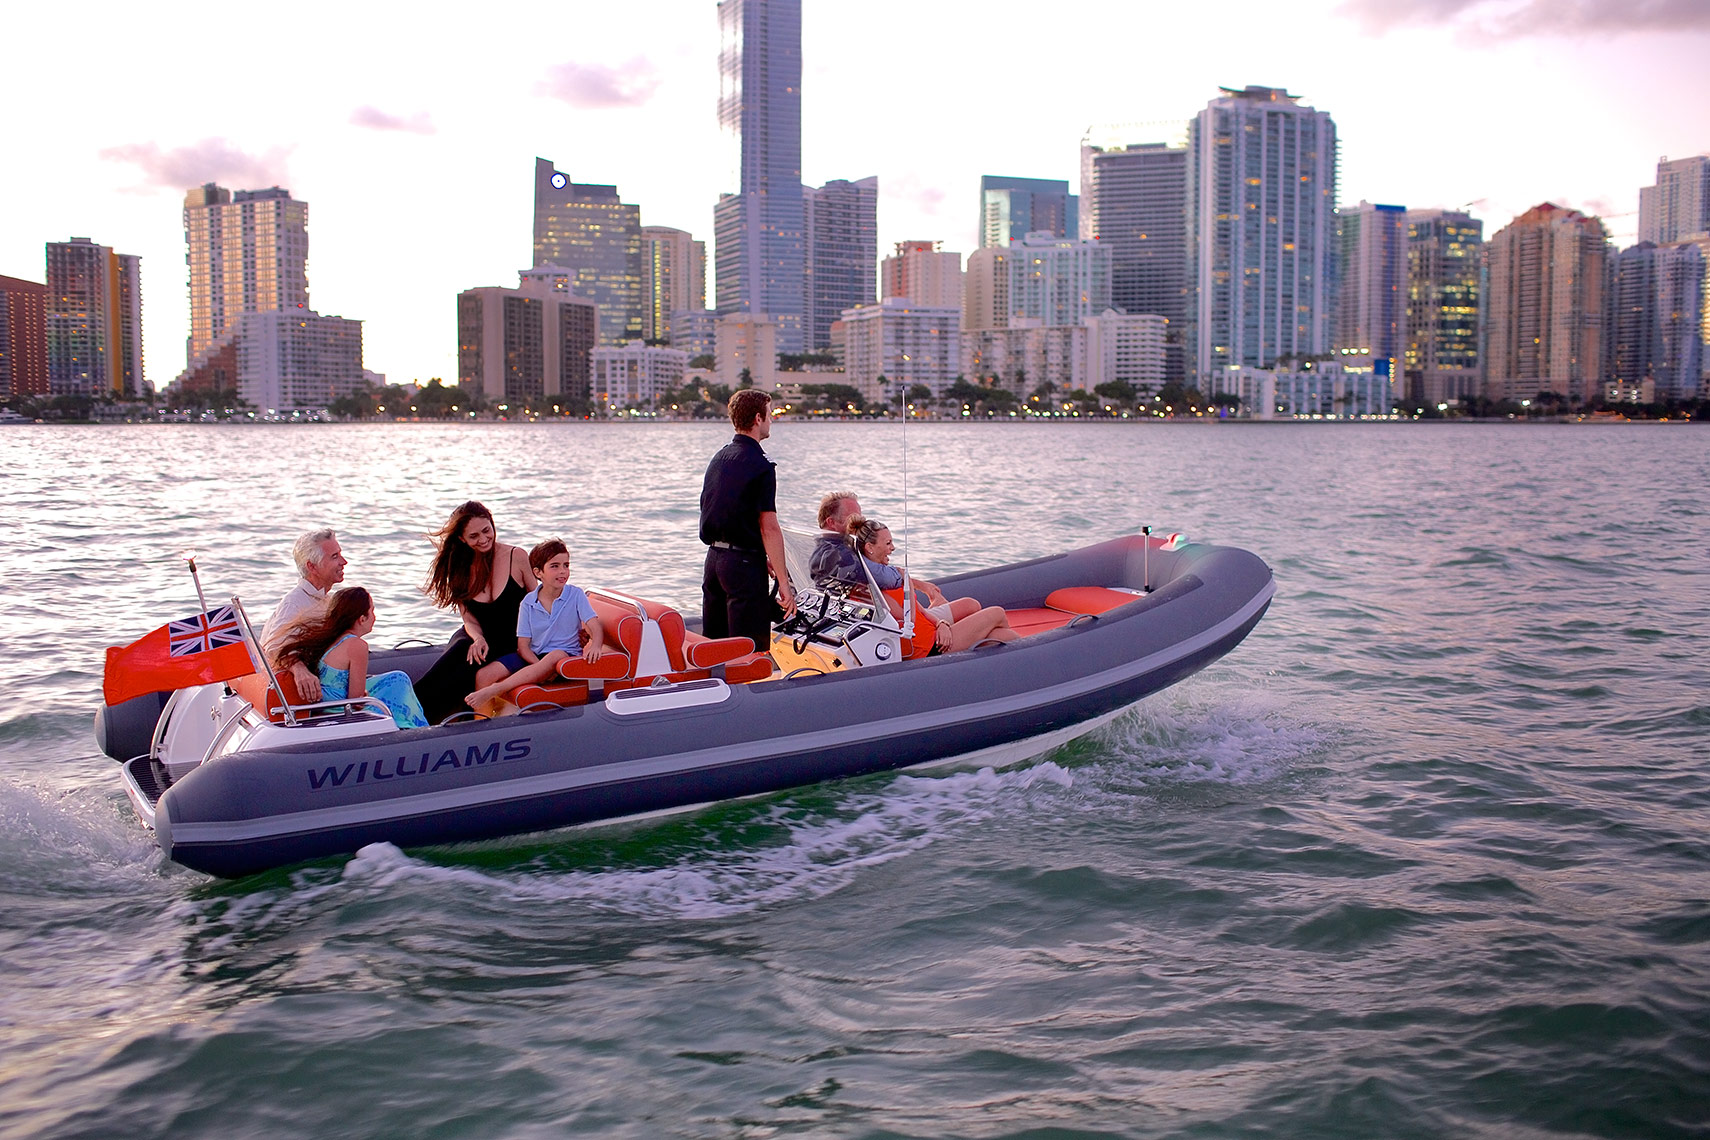 _MG_3732-Yacht-tender-with-passengers-at-dusk_Miami,-FL_Robert-Holland